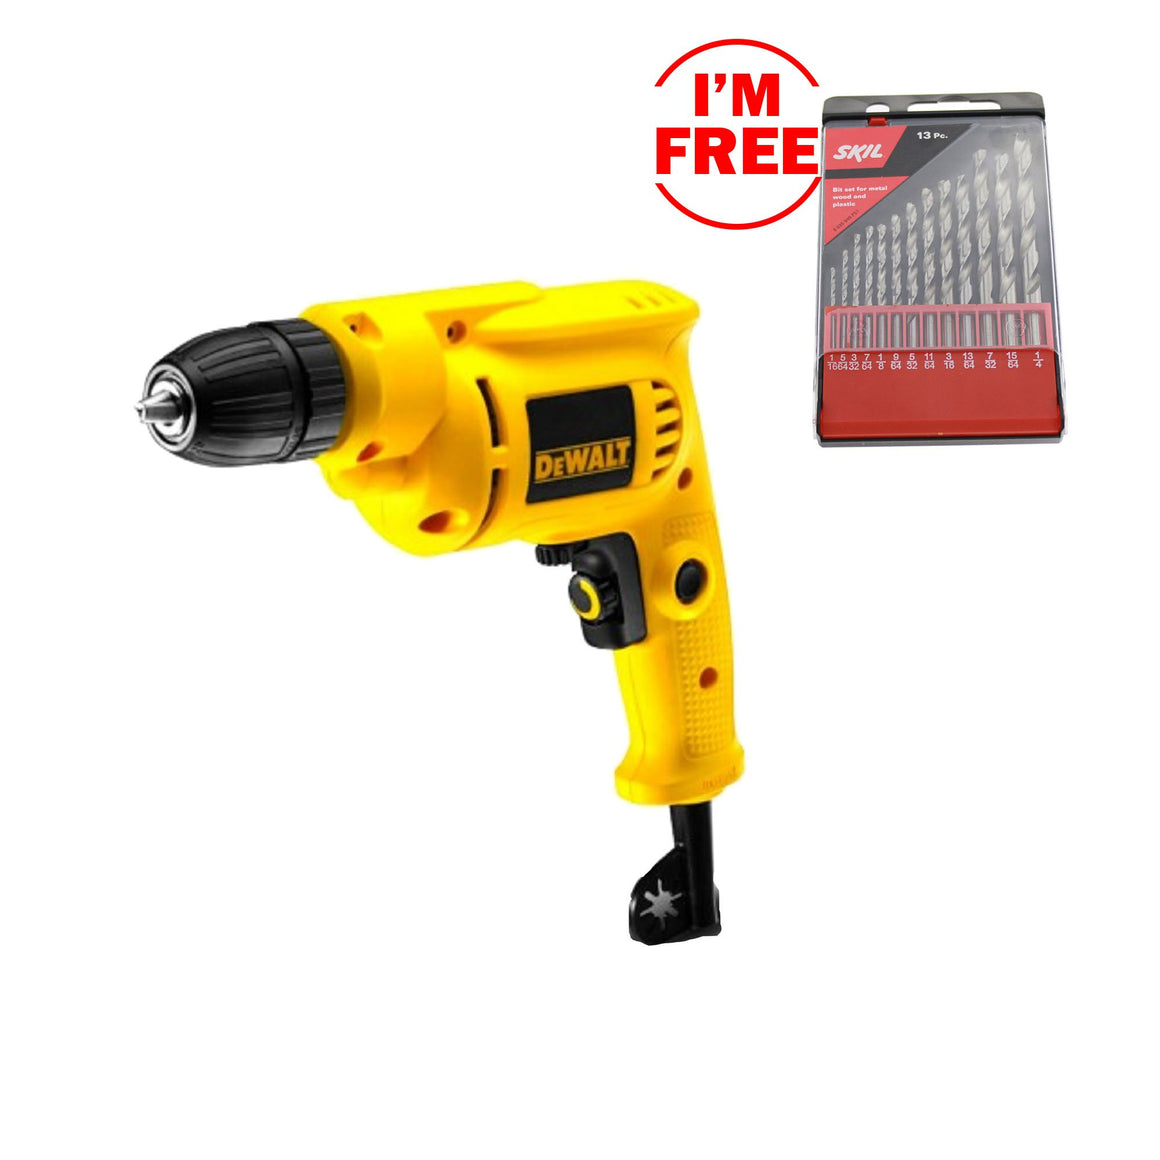 DeWalt Rotary Drill with Keyless Chuck